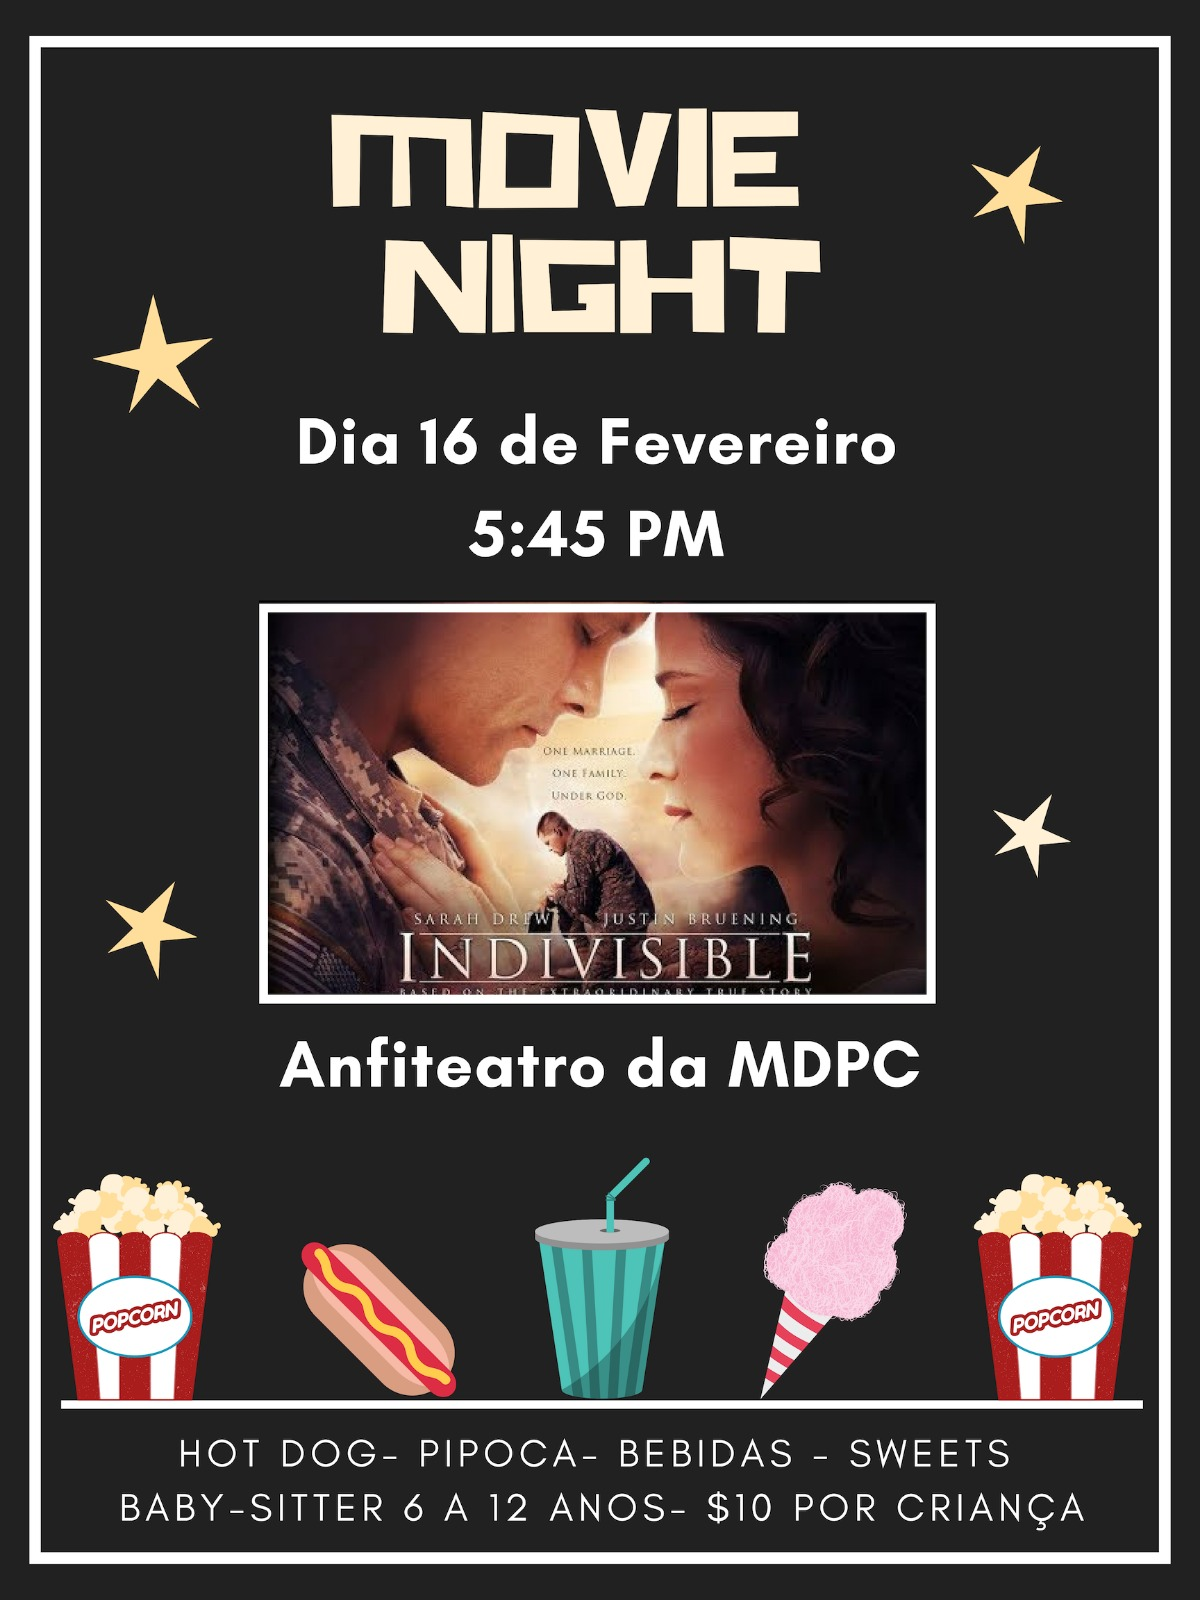 Movie night invite